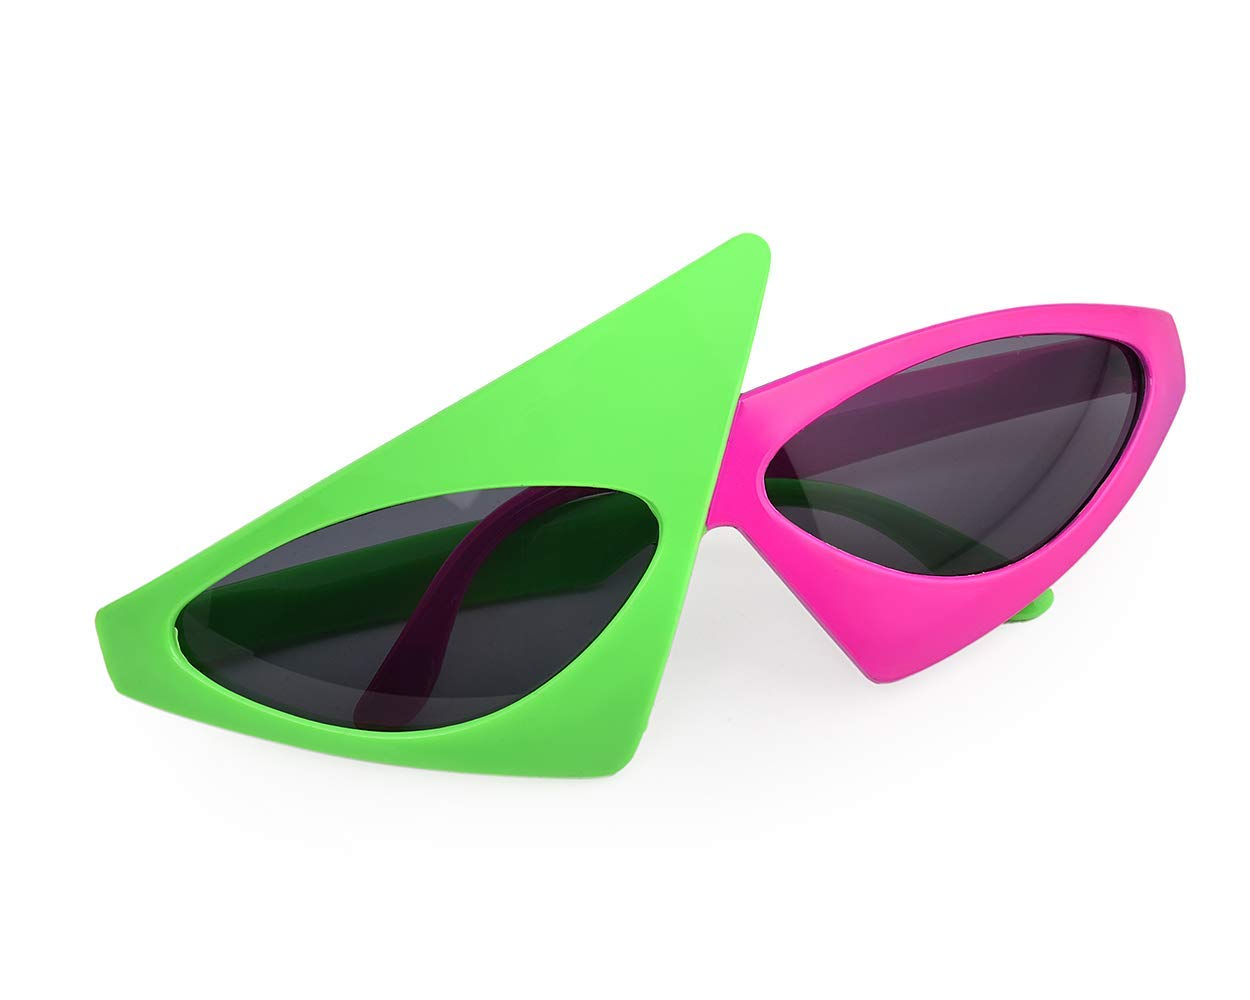 315e371761 Get Quotations · ACE Select Novelty Party Sunglasses 80s Asymmetric Glasses  Hot Pink and Neon Green Glasses for Hip